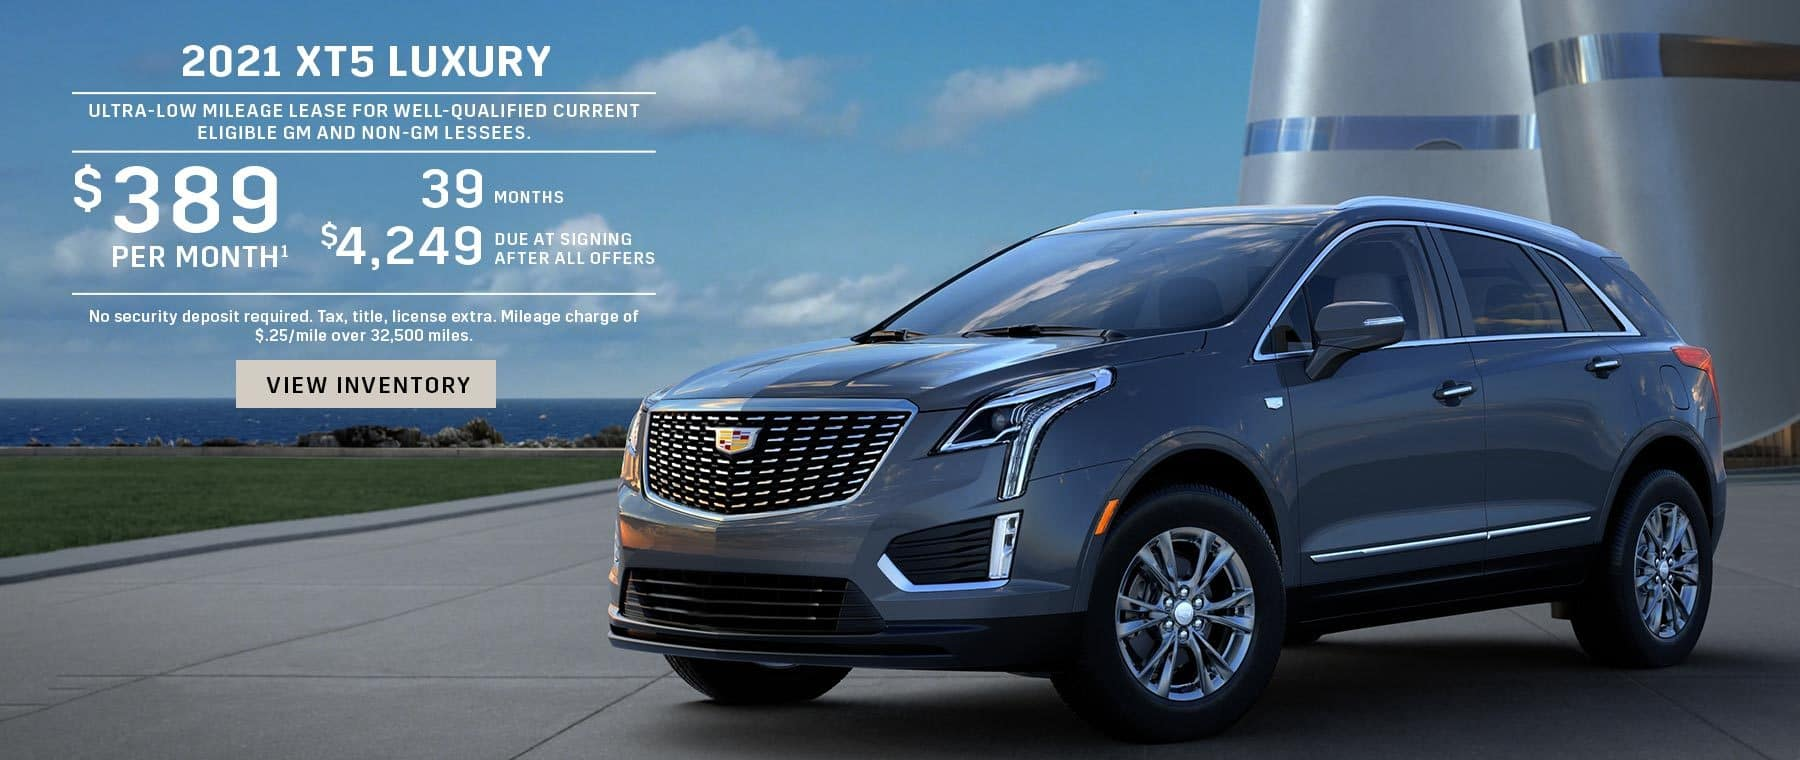 2021 XT5 Luxury. Ultra-low mileage lease for well-qualified current eligible GM and non-GM lessees. $389 per month 39 months $4,249 due at signing after all offers. No security deposit required. Tax, title, license extra. Mileage charge of $.25/mile over 32,500 miles.